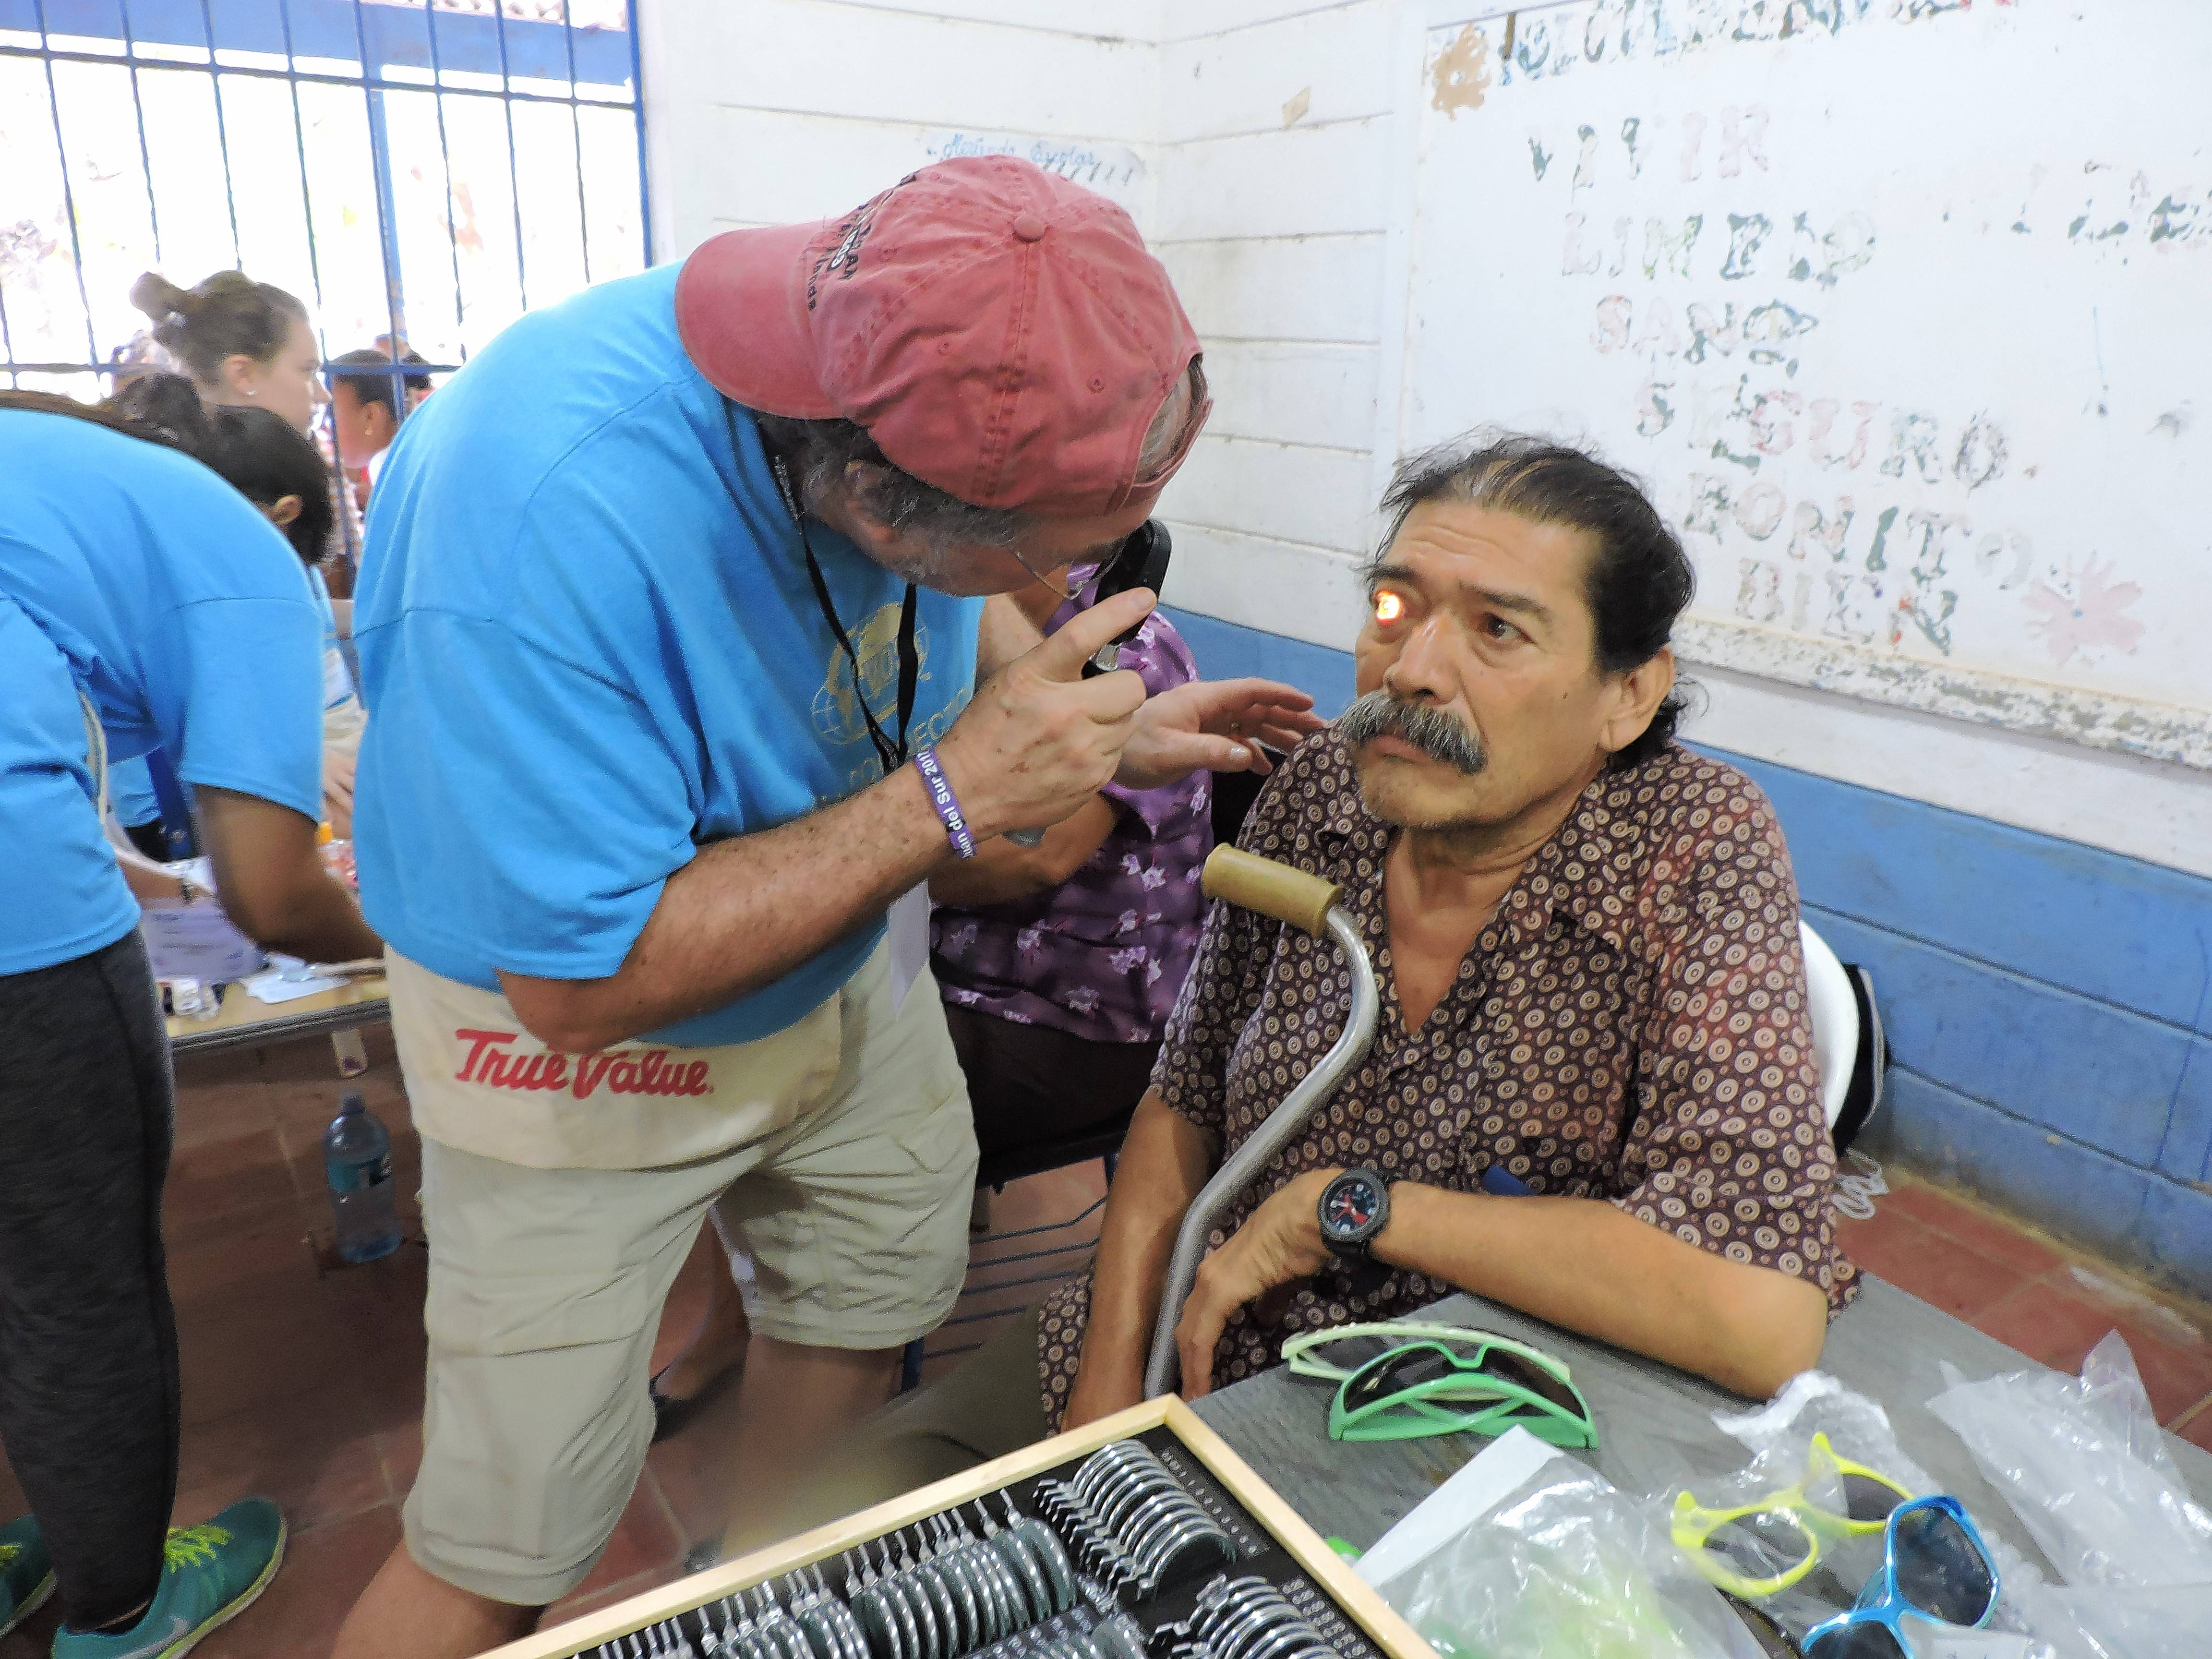 Dr. Larry Nierman examines one of the hundreds of patients he saw over the course of the week on a medical mission to Nicaragua with Volunteering Optometric Services to Humanity.